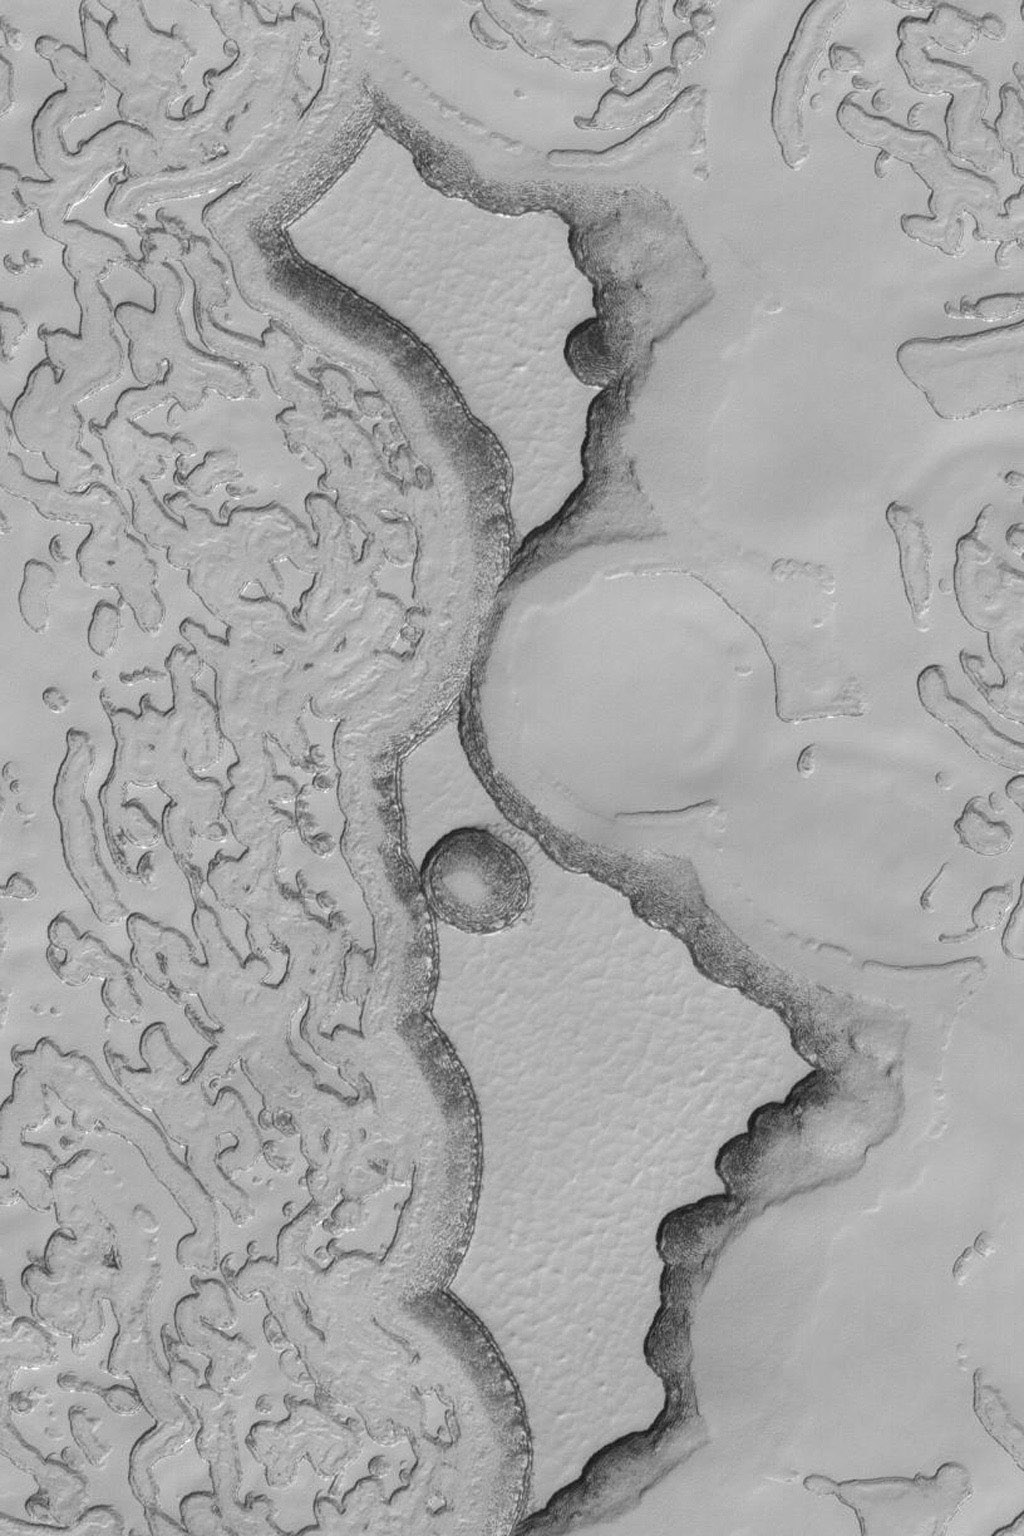 NASA's Mars Global Surveyor shows two large and many small mesas composed of frozen carbon dioxide on the south polar cap of Mars.